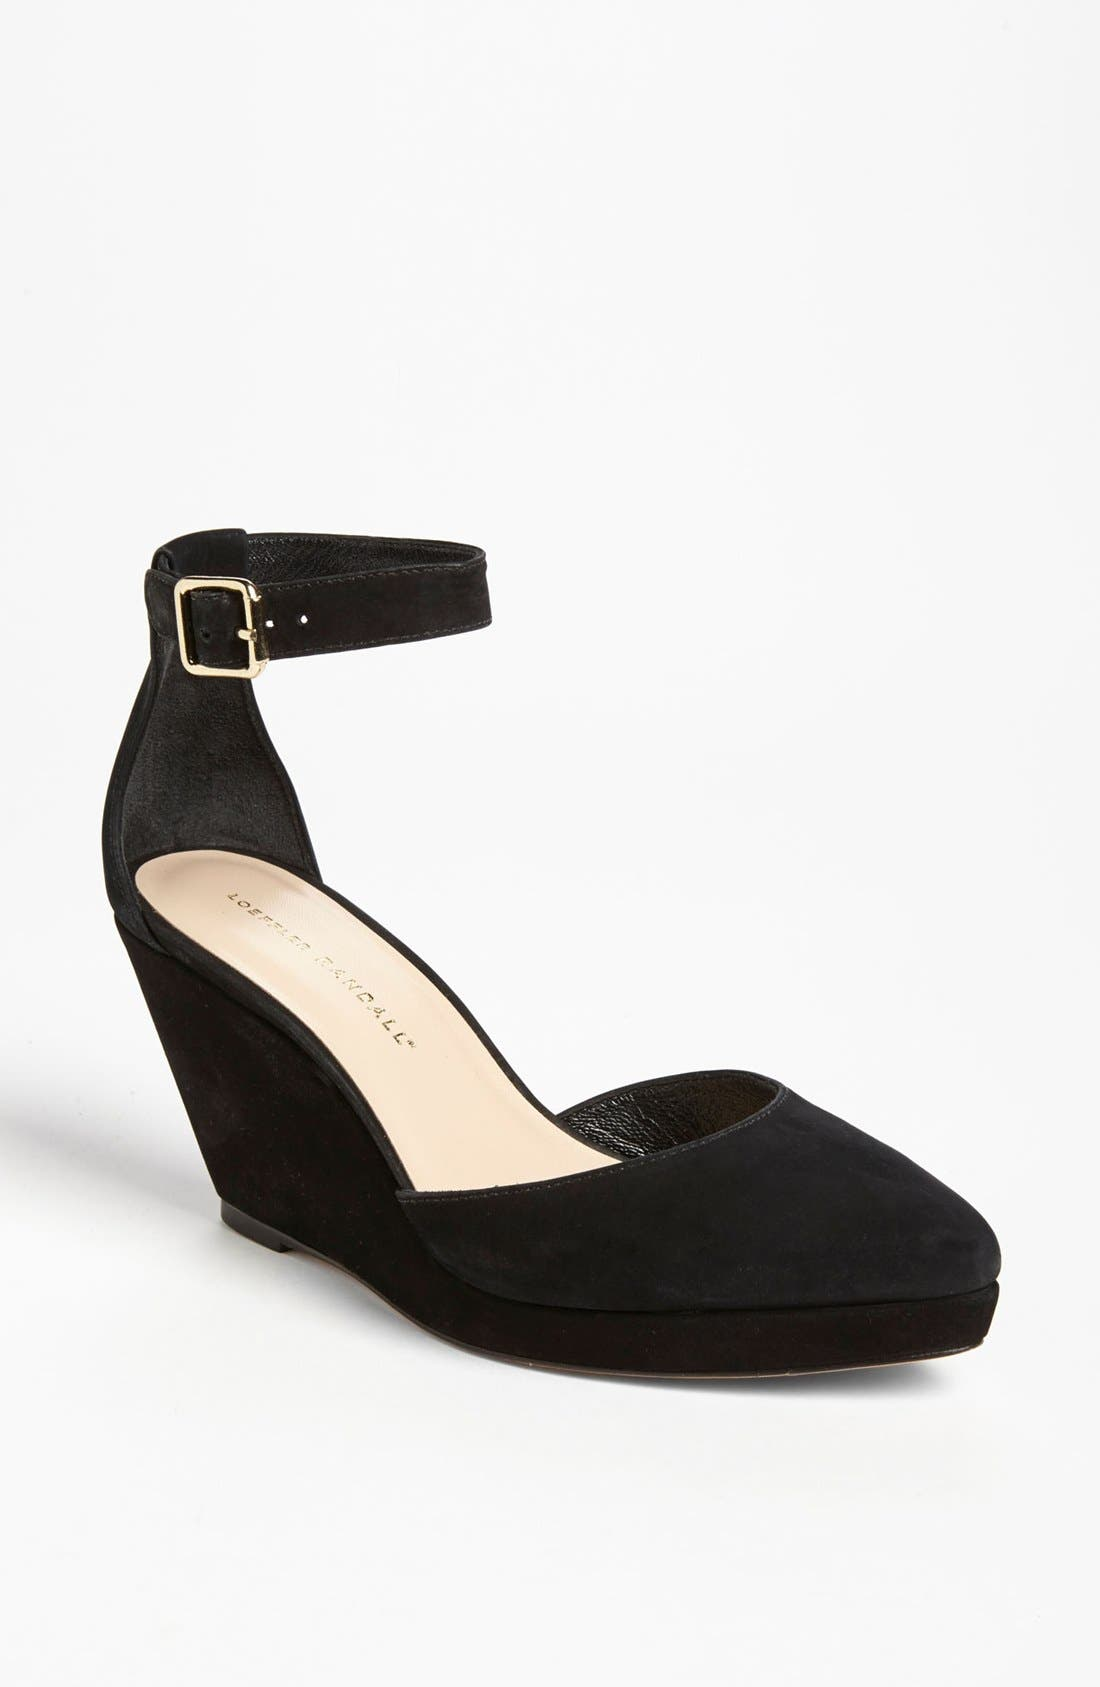 Alternate Image 1 Selected - Loeffler Randall 'Jules' Sandal (Online Only)